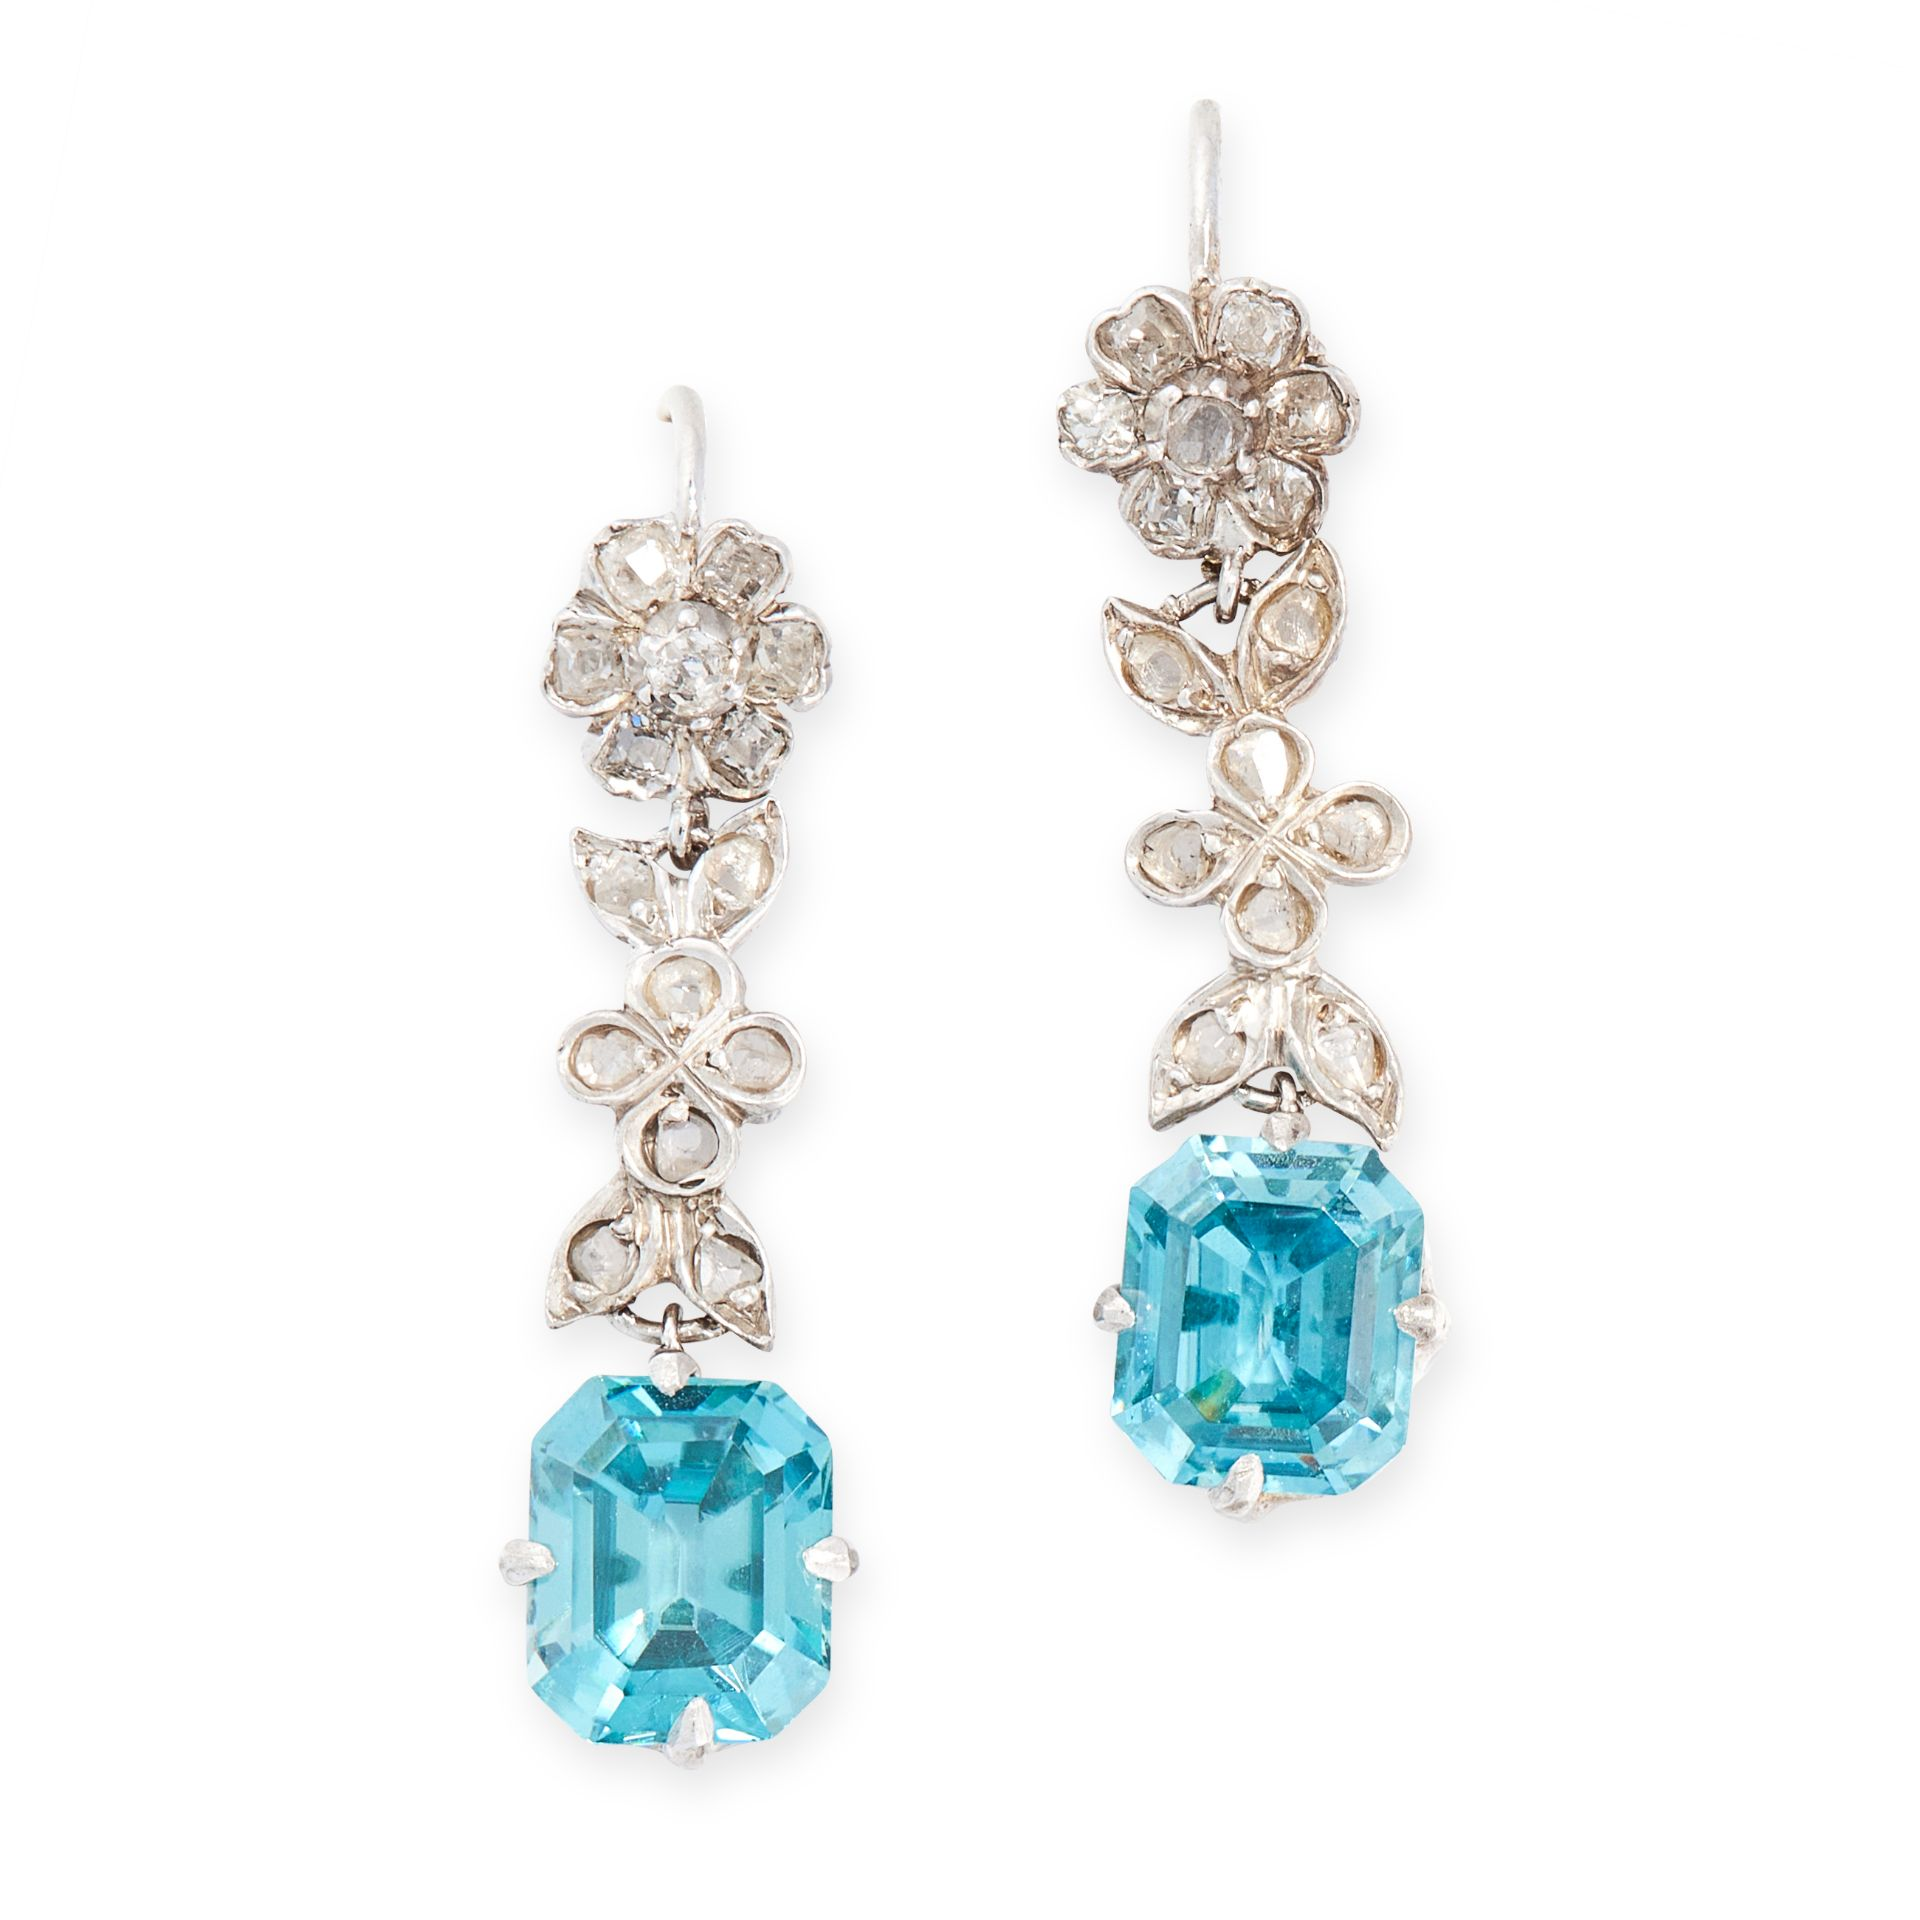 A PAIR OF BLUE ZIRCON AND DIAMOND EARRINGS, EARLY 20TH CENTURY each set with an emerald cut blue